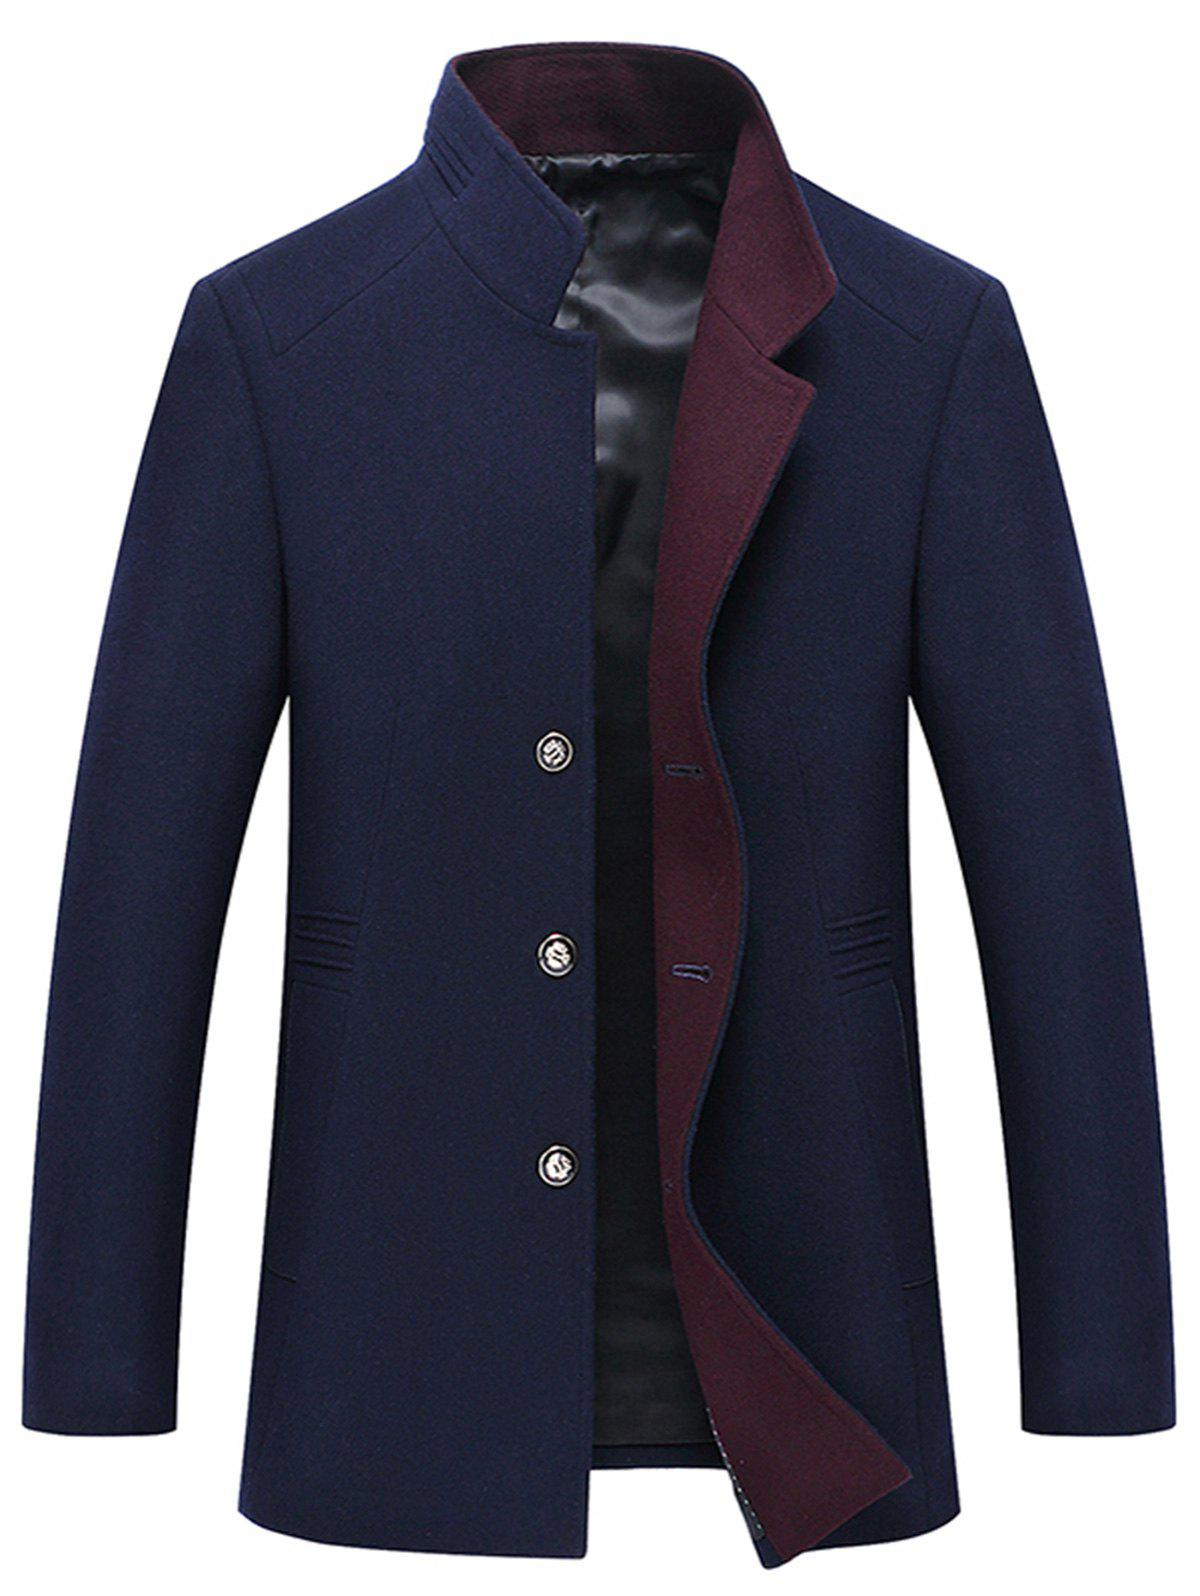 Hot Button Up Mandarin Collar Wool Blend Coat